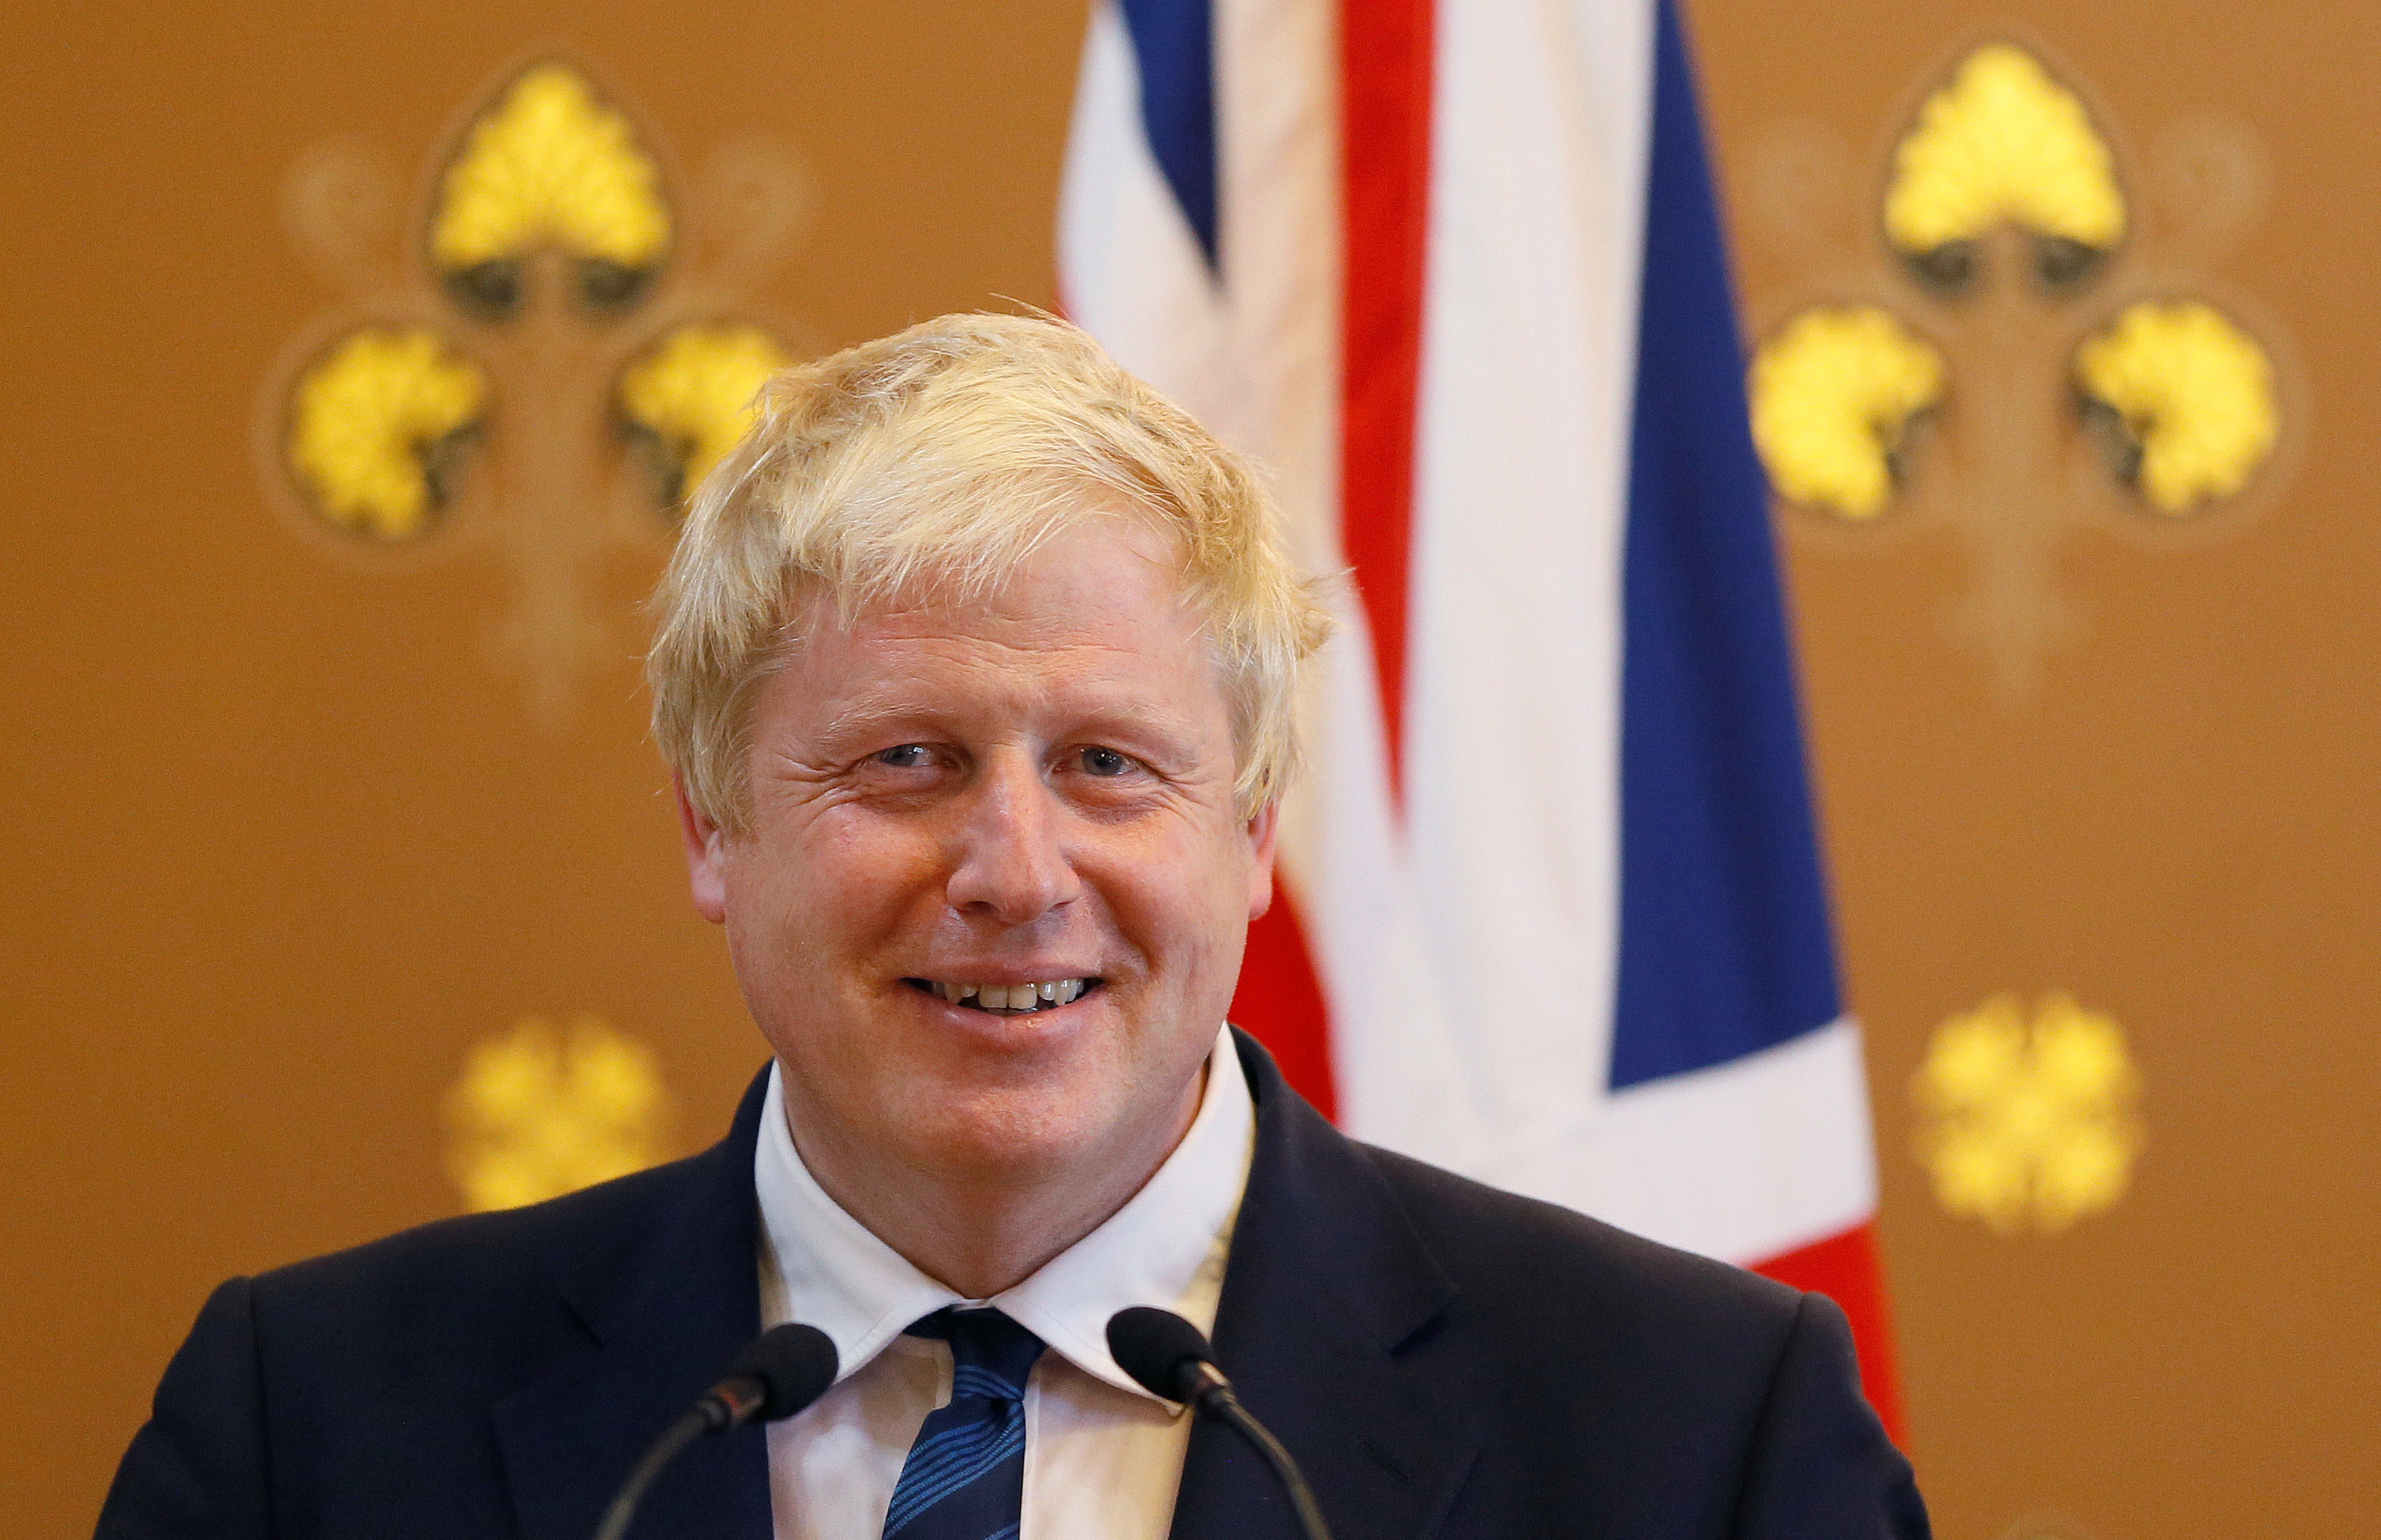 Britain's Foreign Secretary Boris Johnson smiles during a press conference with U.S. Secretary of State John Kerry at the Foreign Office in London, July 19, 2016